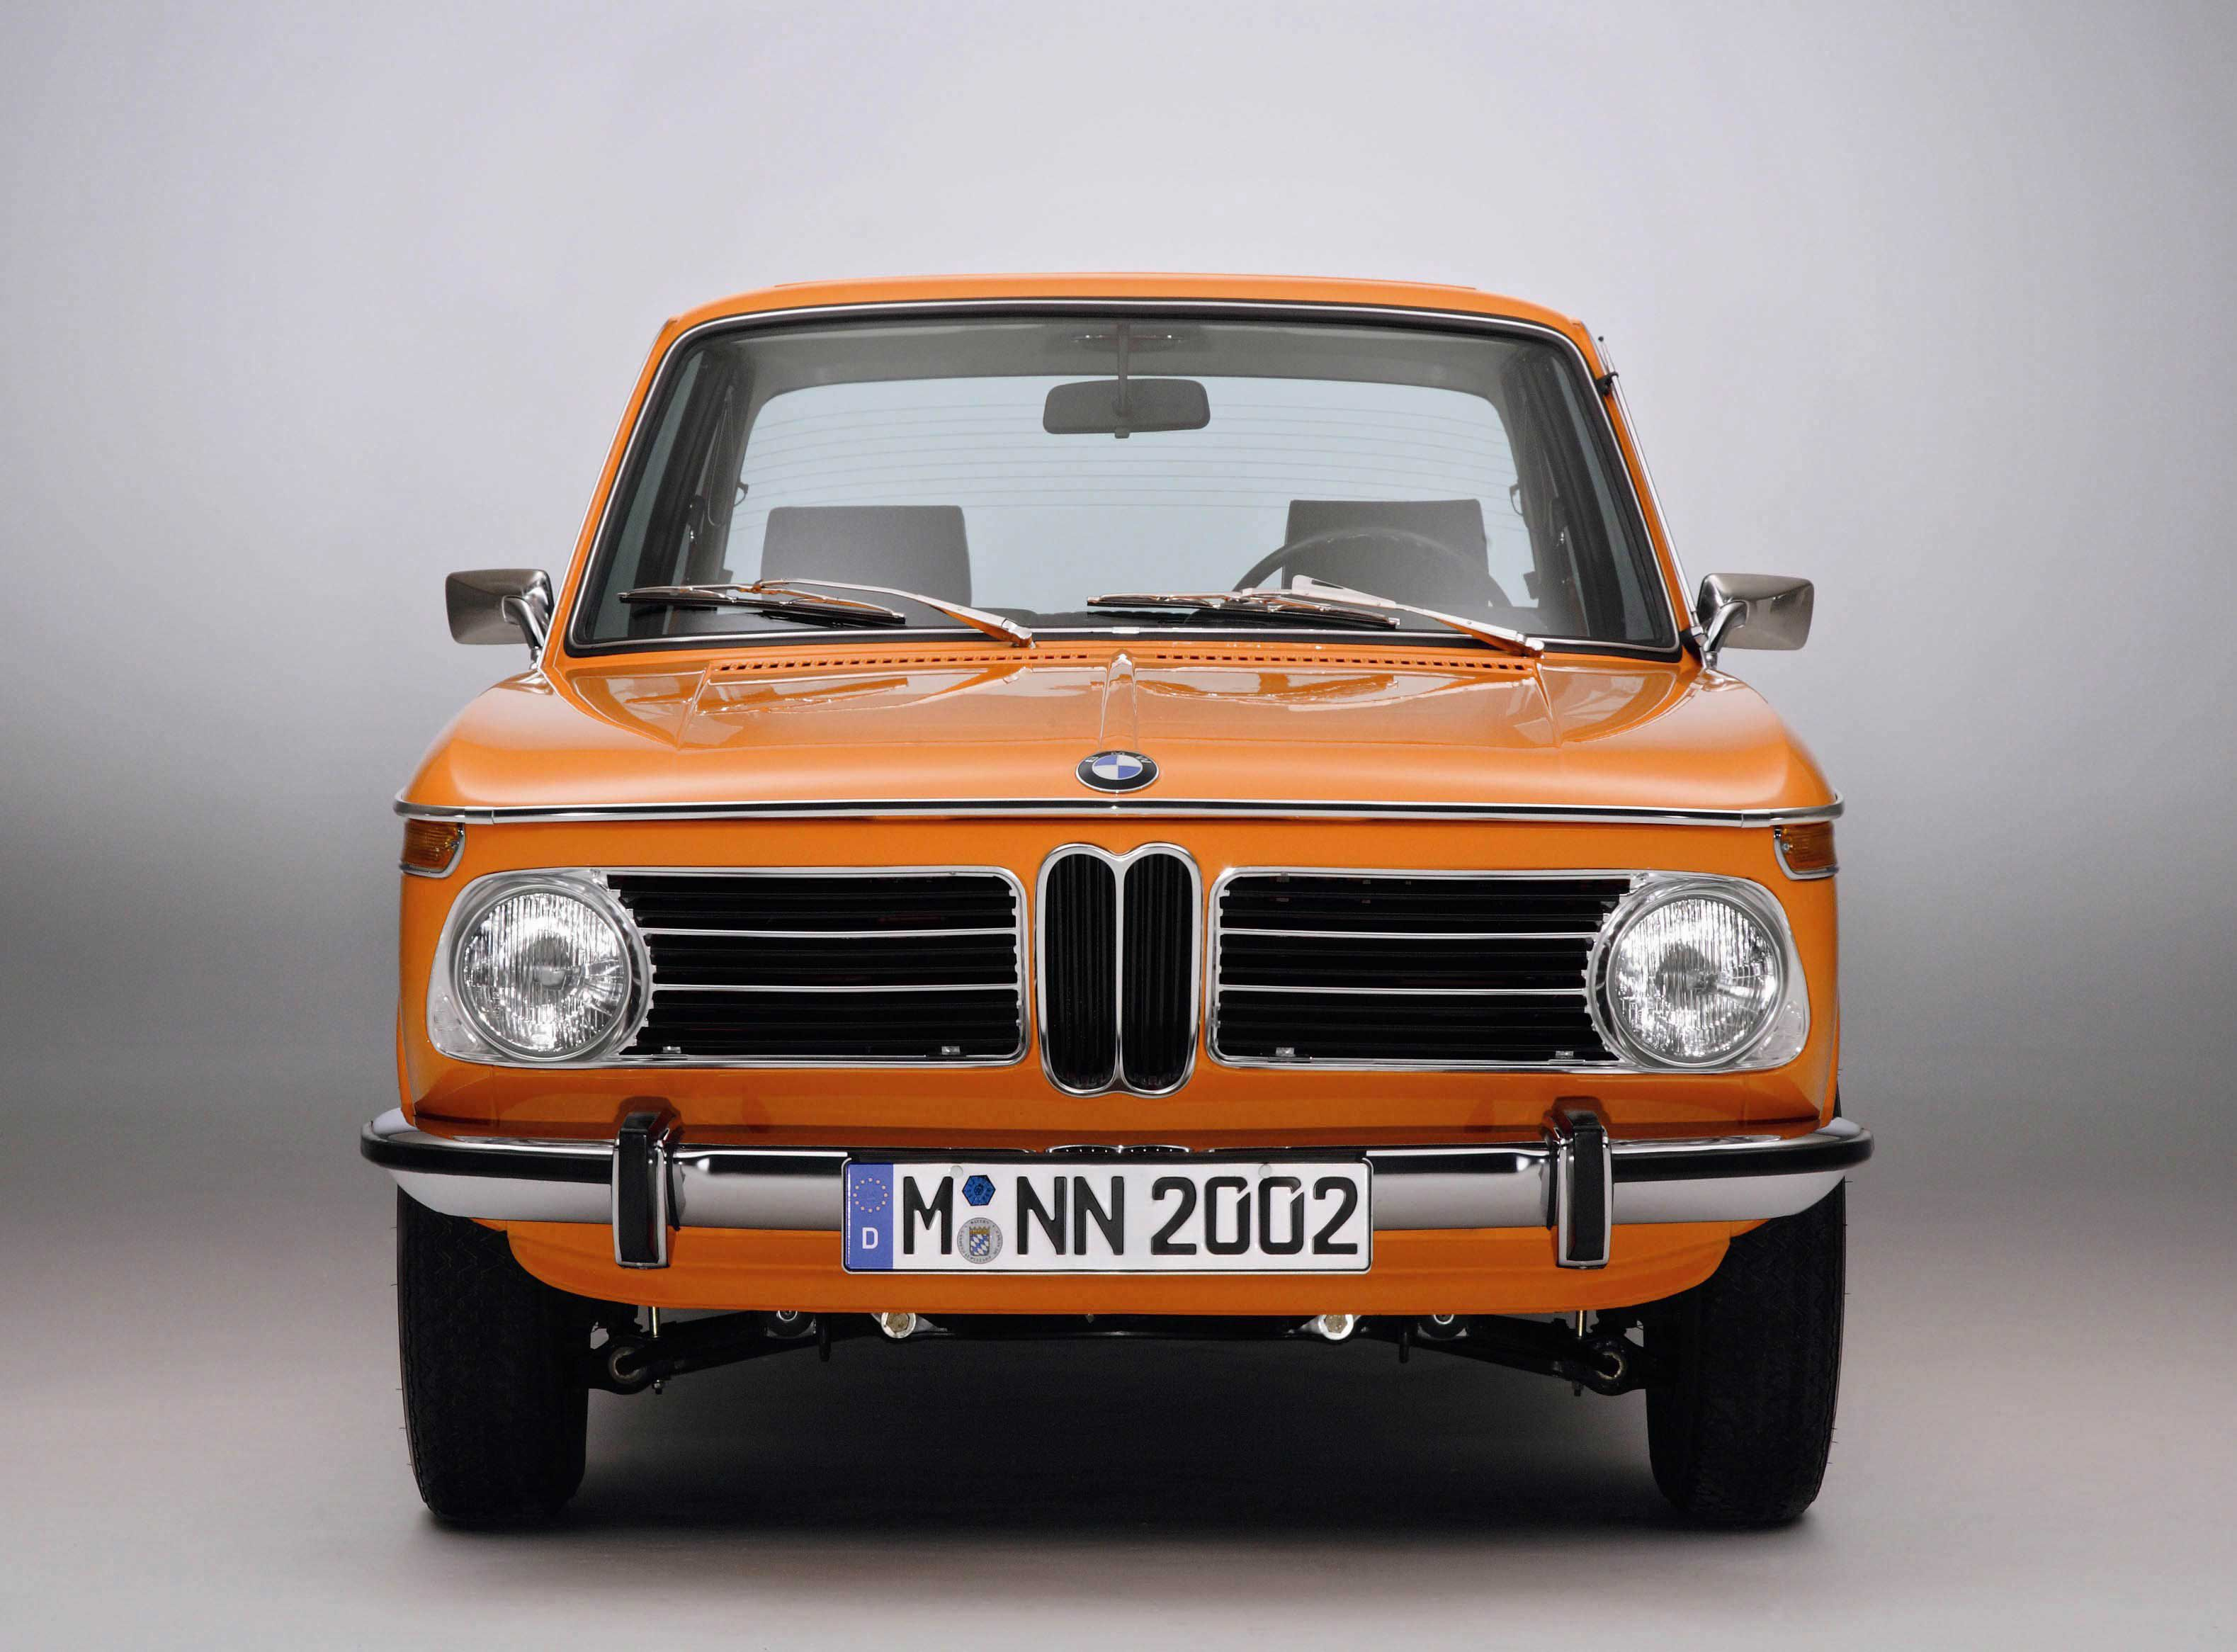 ec841a9ffd23ff5b54d5822ad878c87a Cool Bmw Z1 Joyas sobre Ruedas Cars Trend